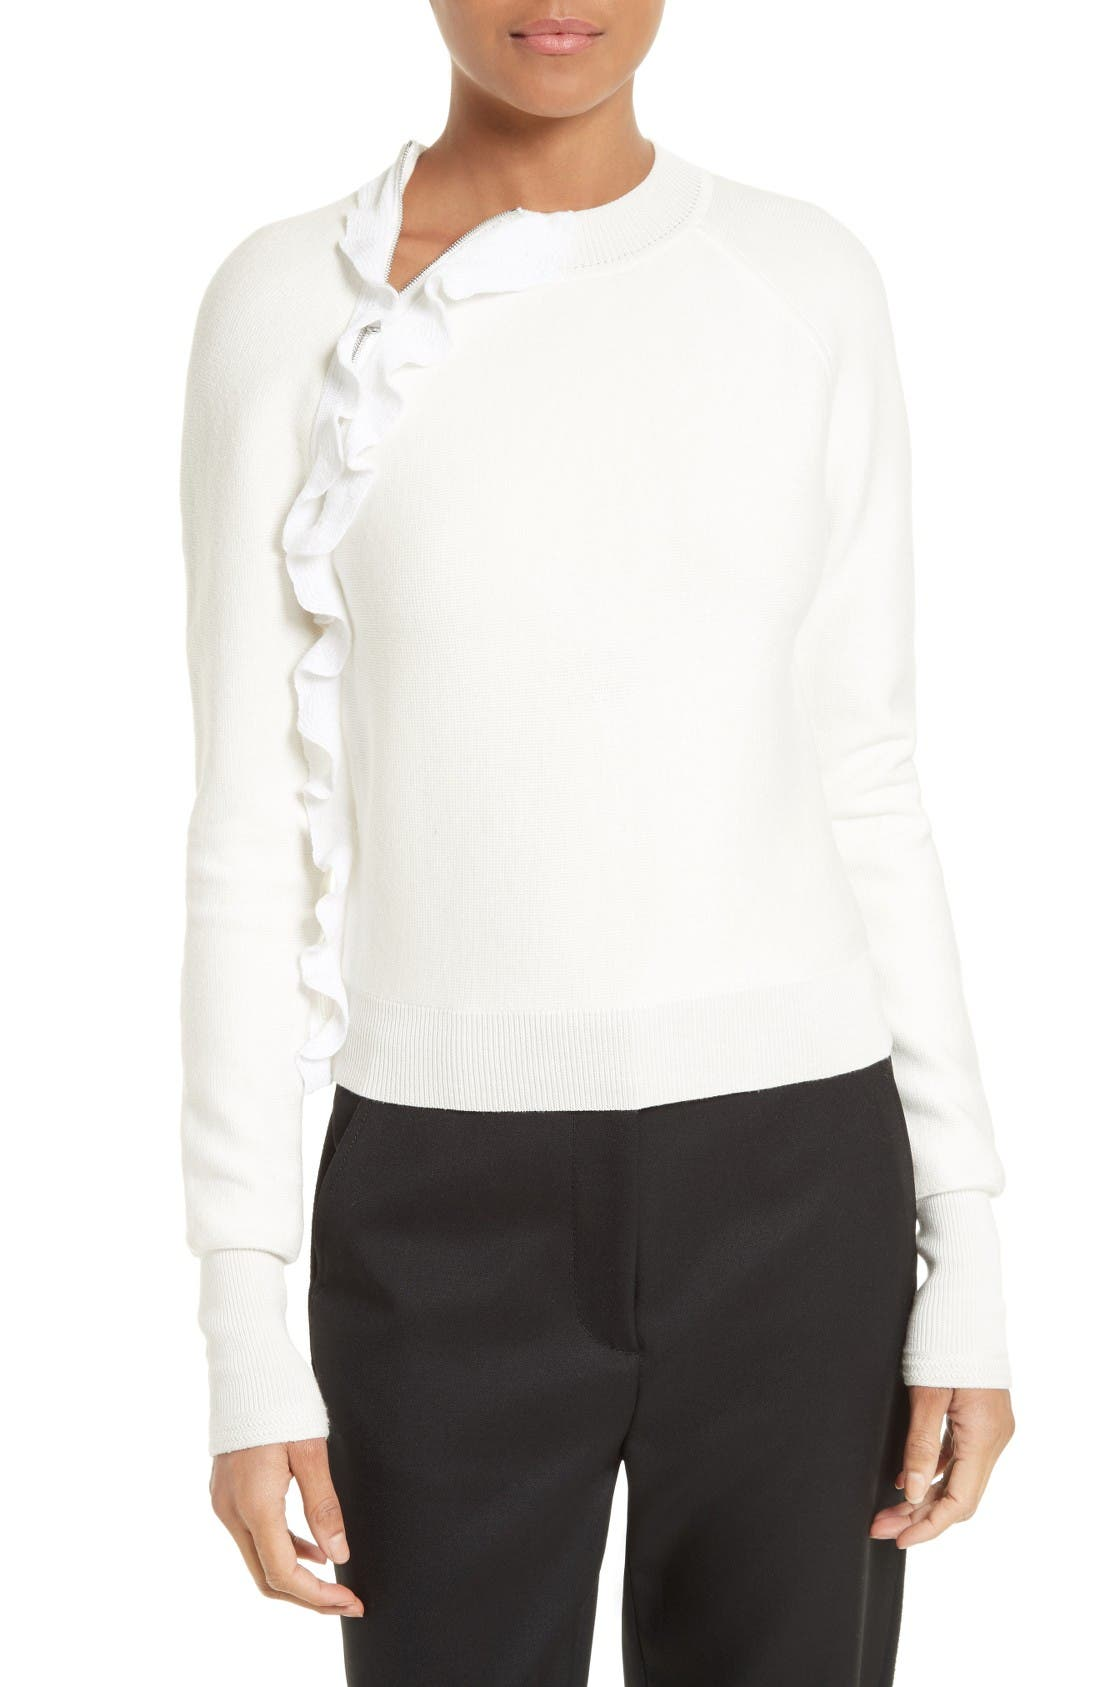 Main Image - 3.1 Phillip Lim Ruffle Front Zip Pullover